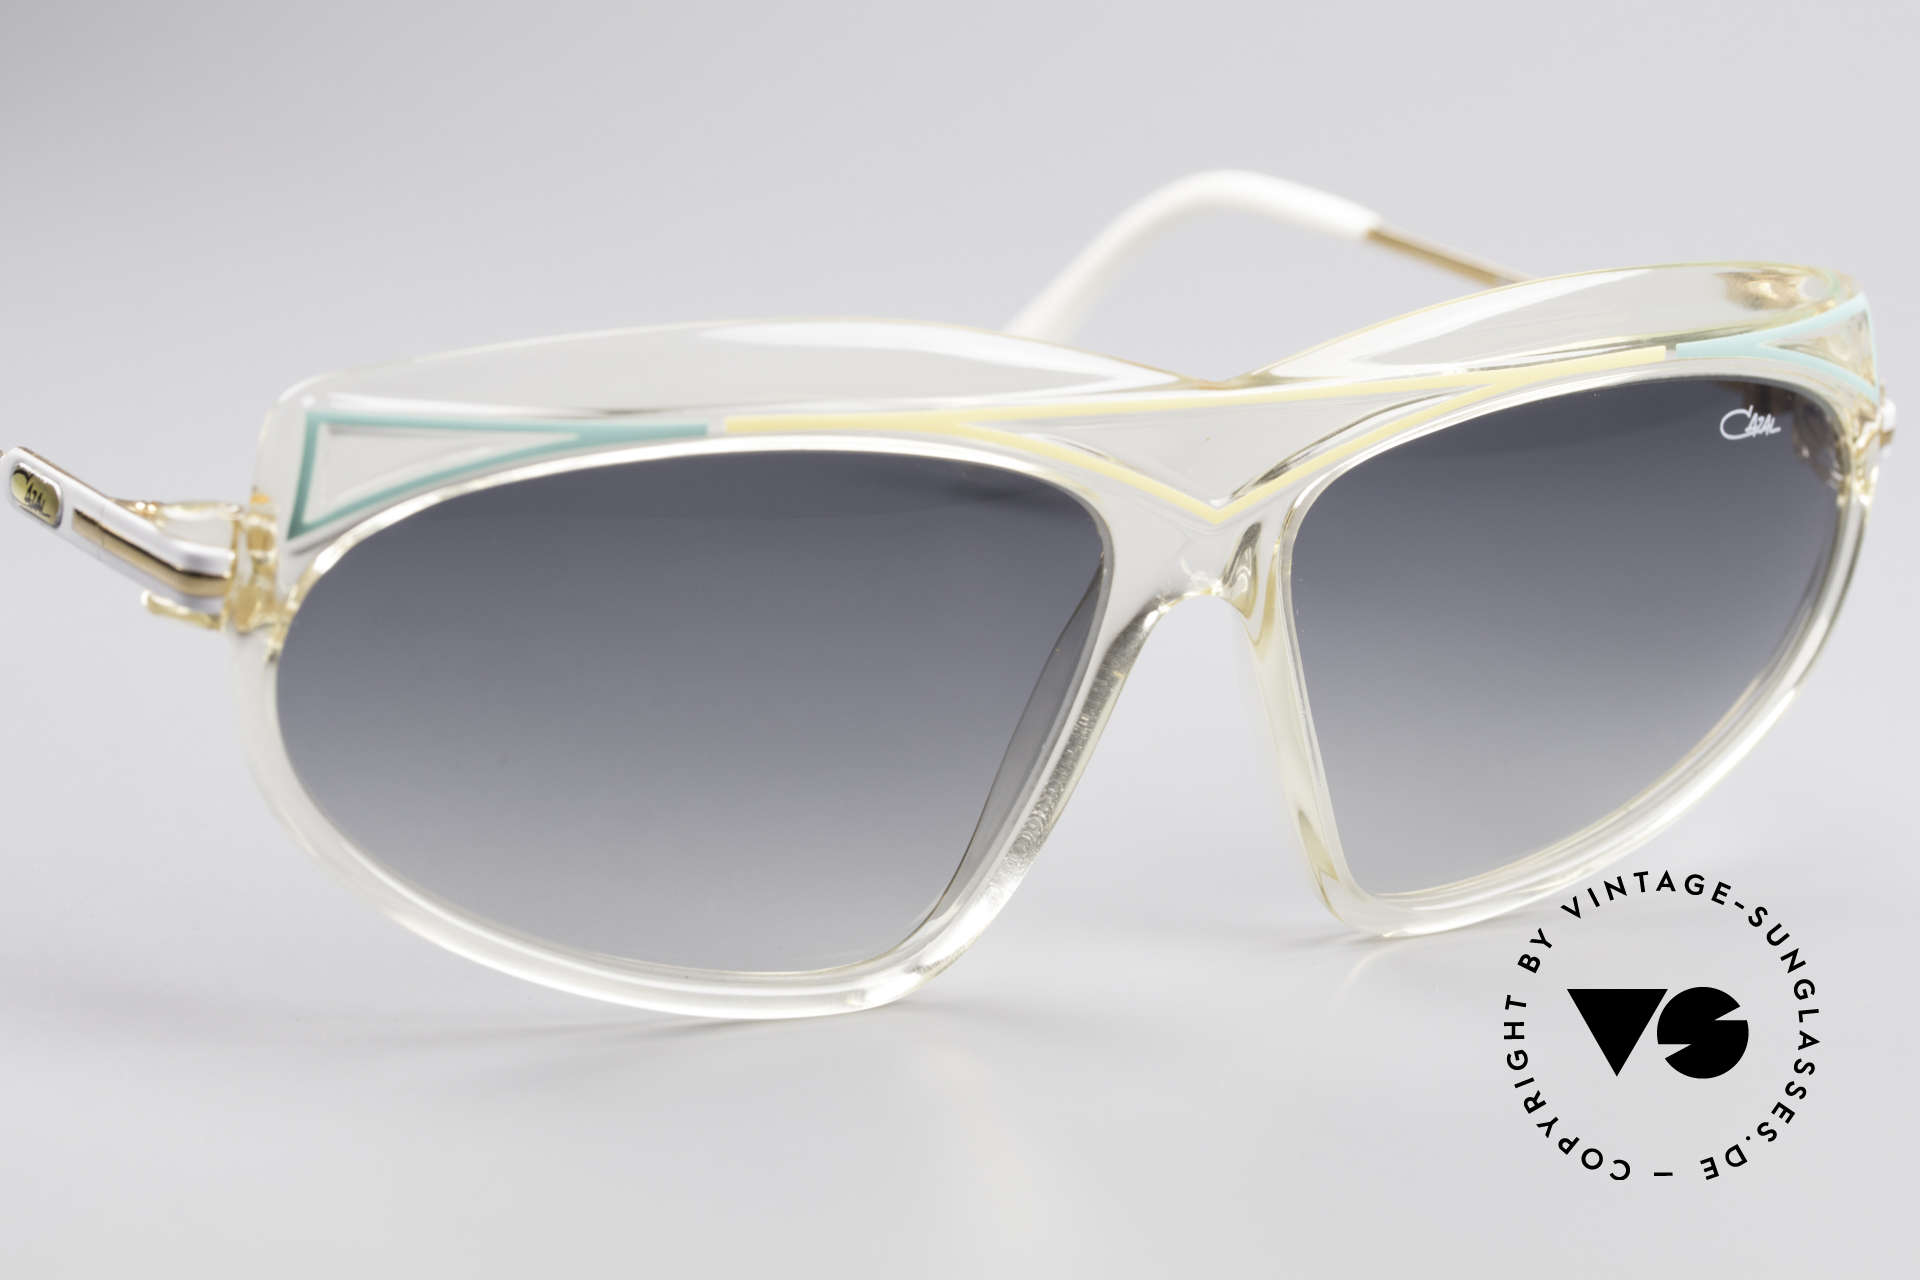 Cazal 854 XL True Vintage Hip Hop Shades, unworn and with original Cazal case (collector's item), Made for Women